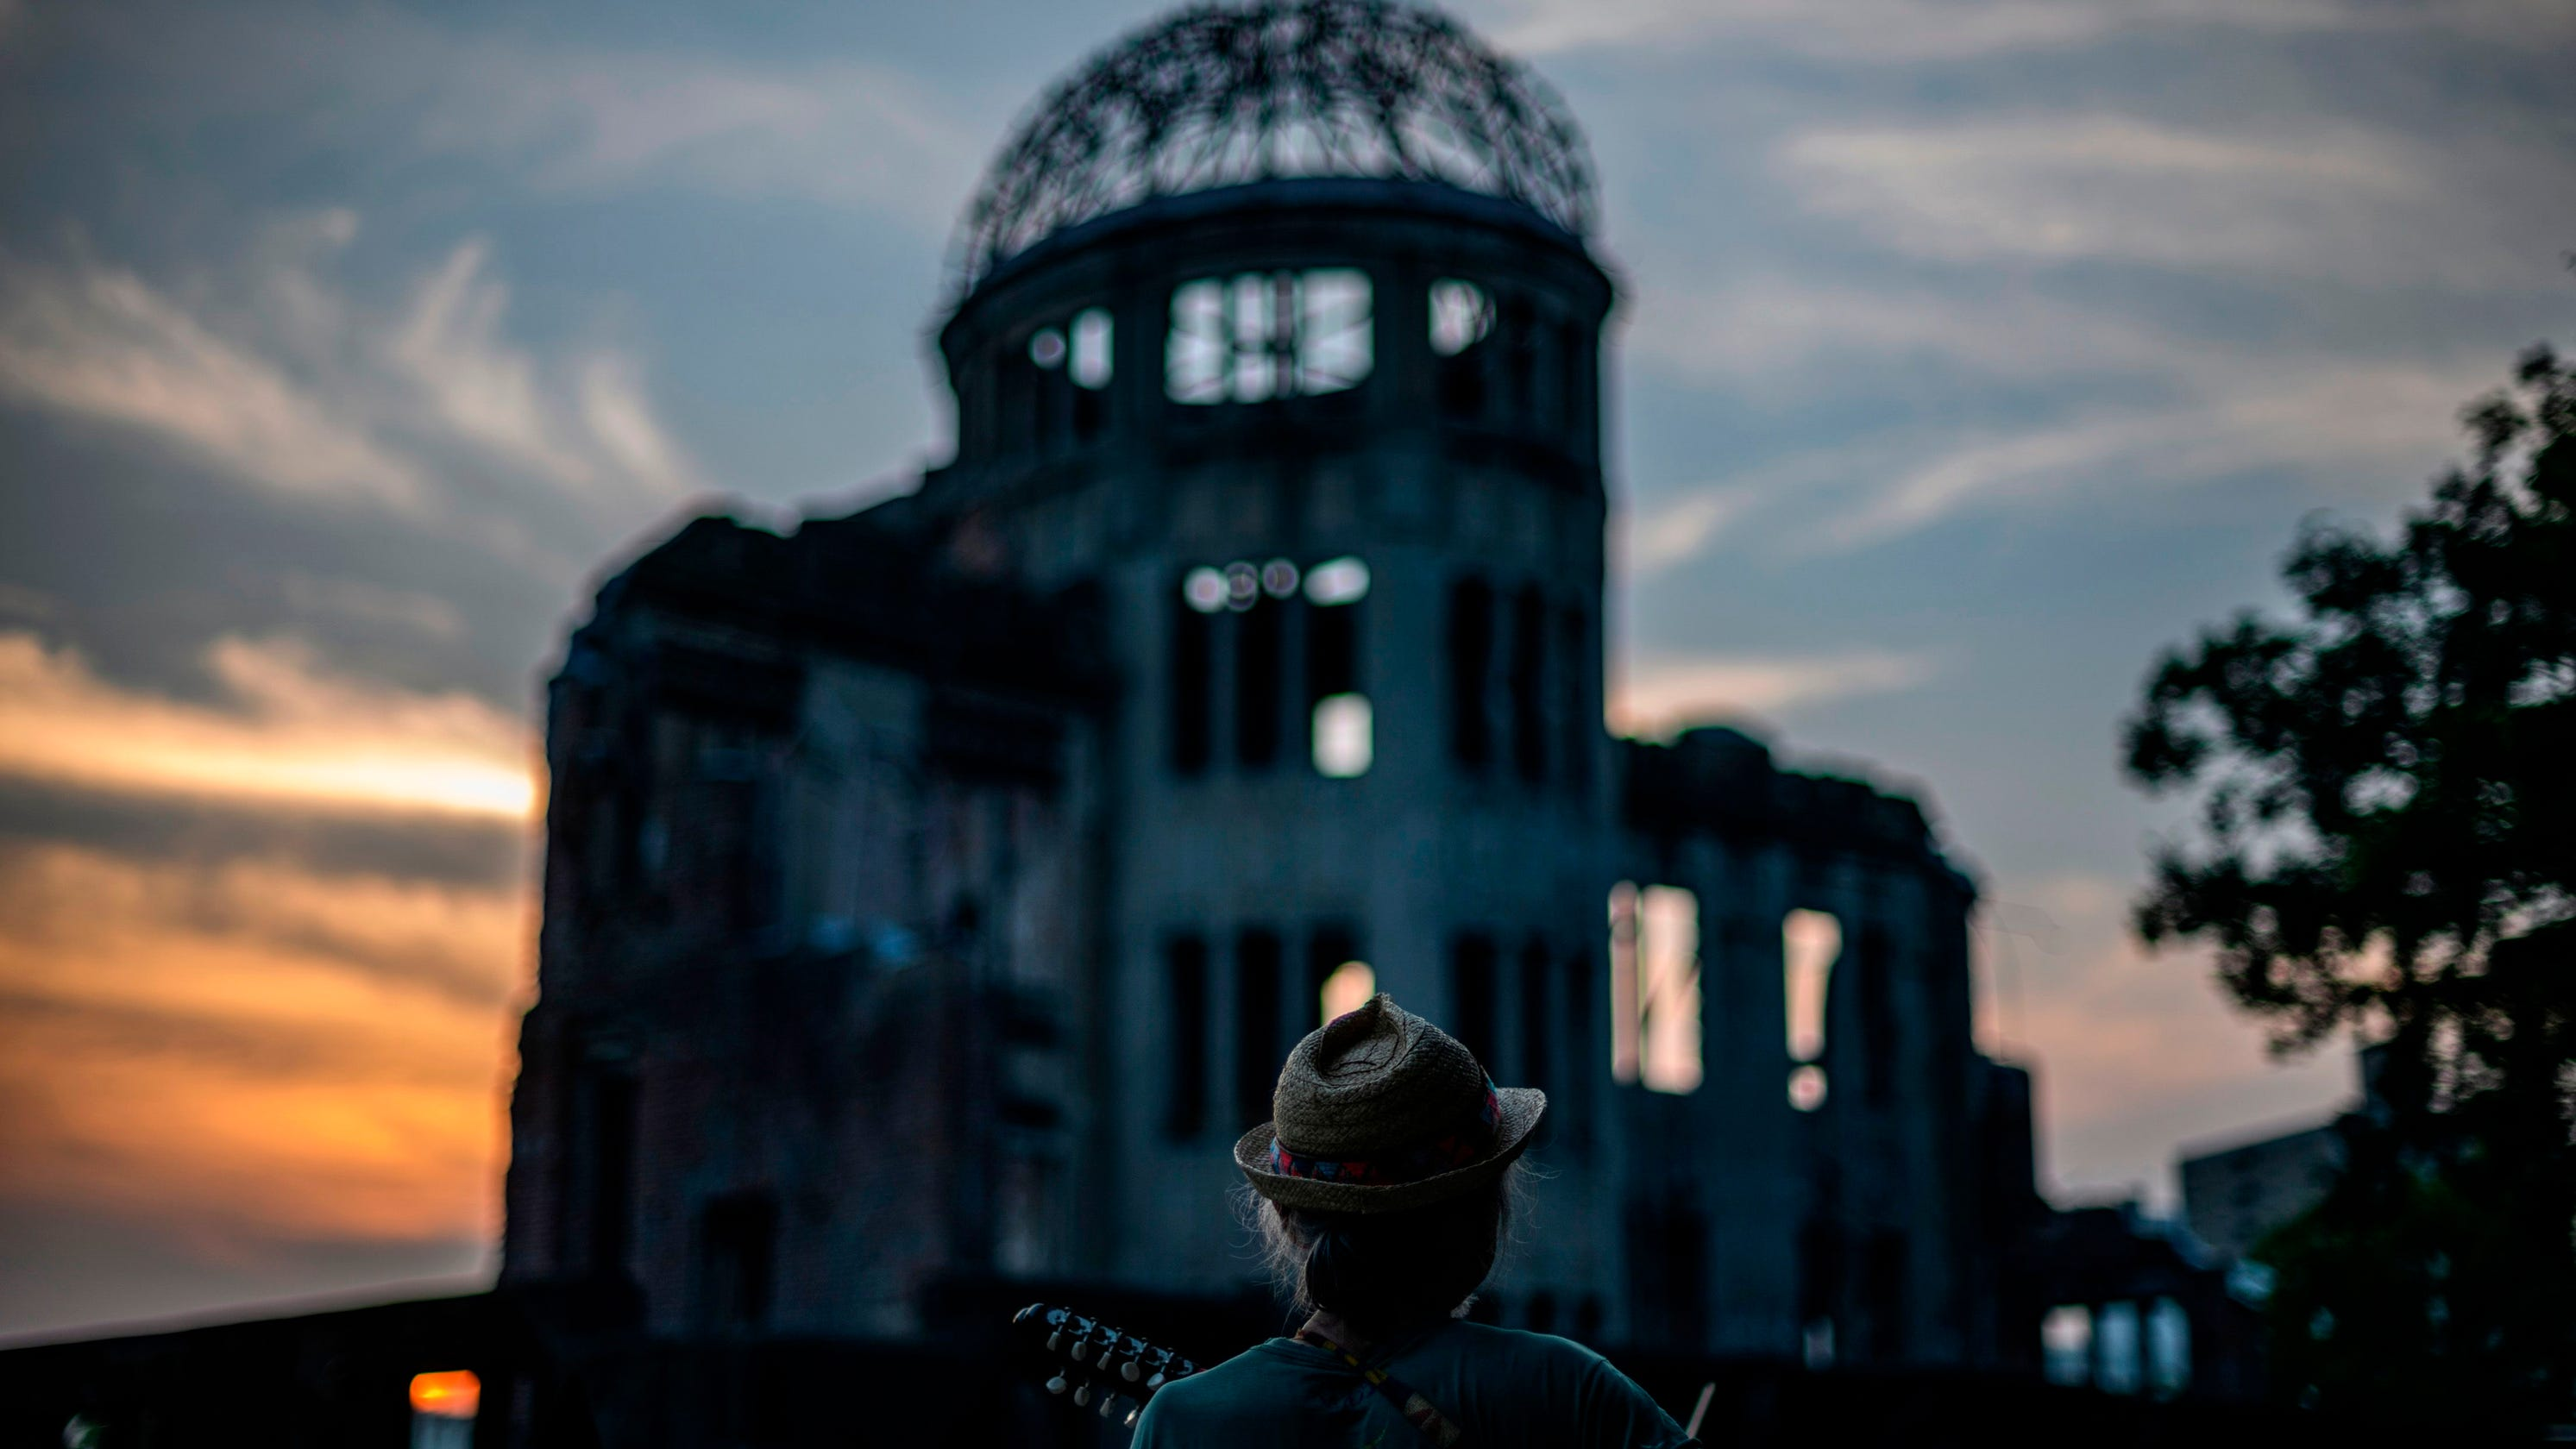 Hiroshima bombing turns 75, jobless claims, Tennessee primaries: 5 things to know Thursday